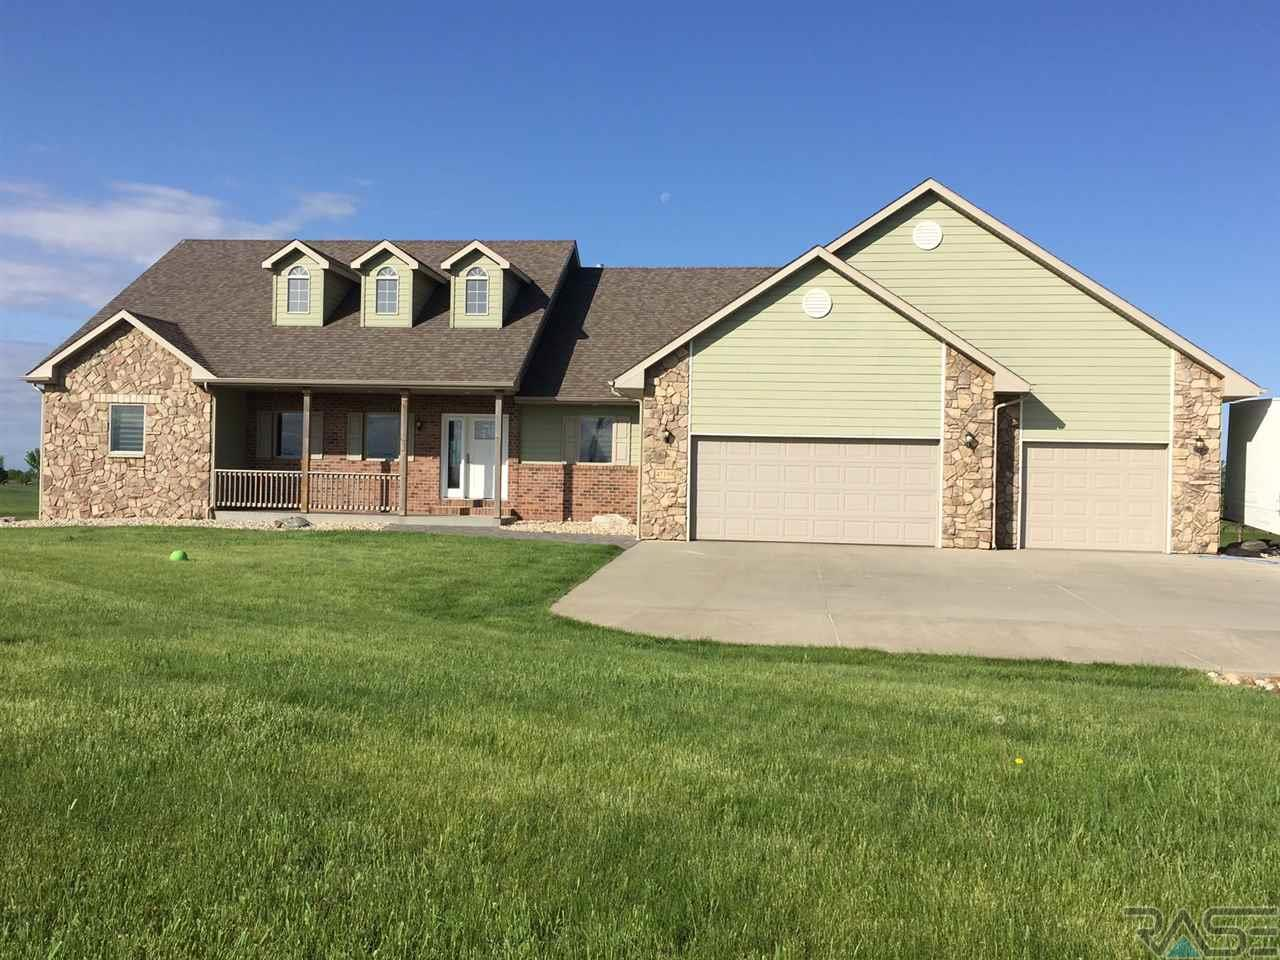 47199 S Clubhouse Rd, Sioux Falls, SD 57108